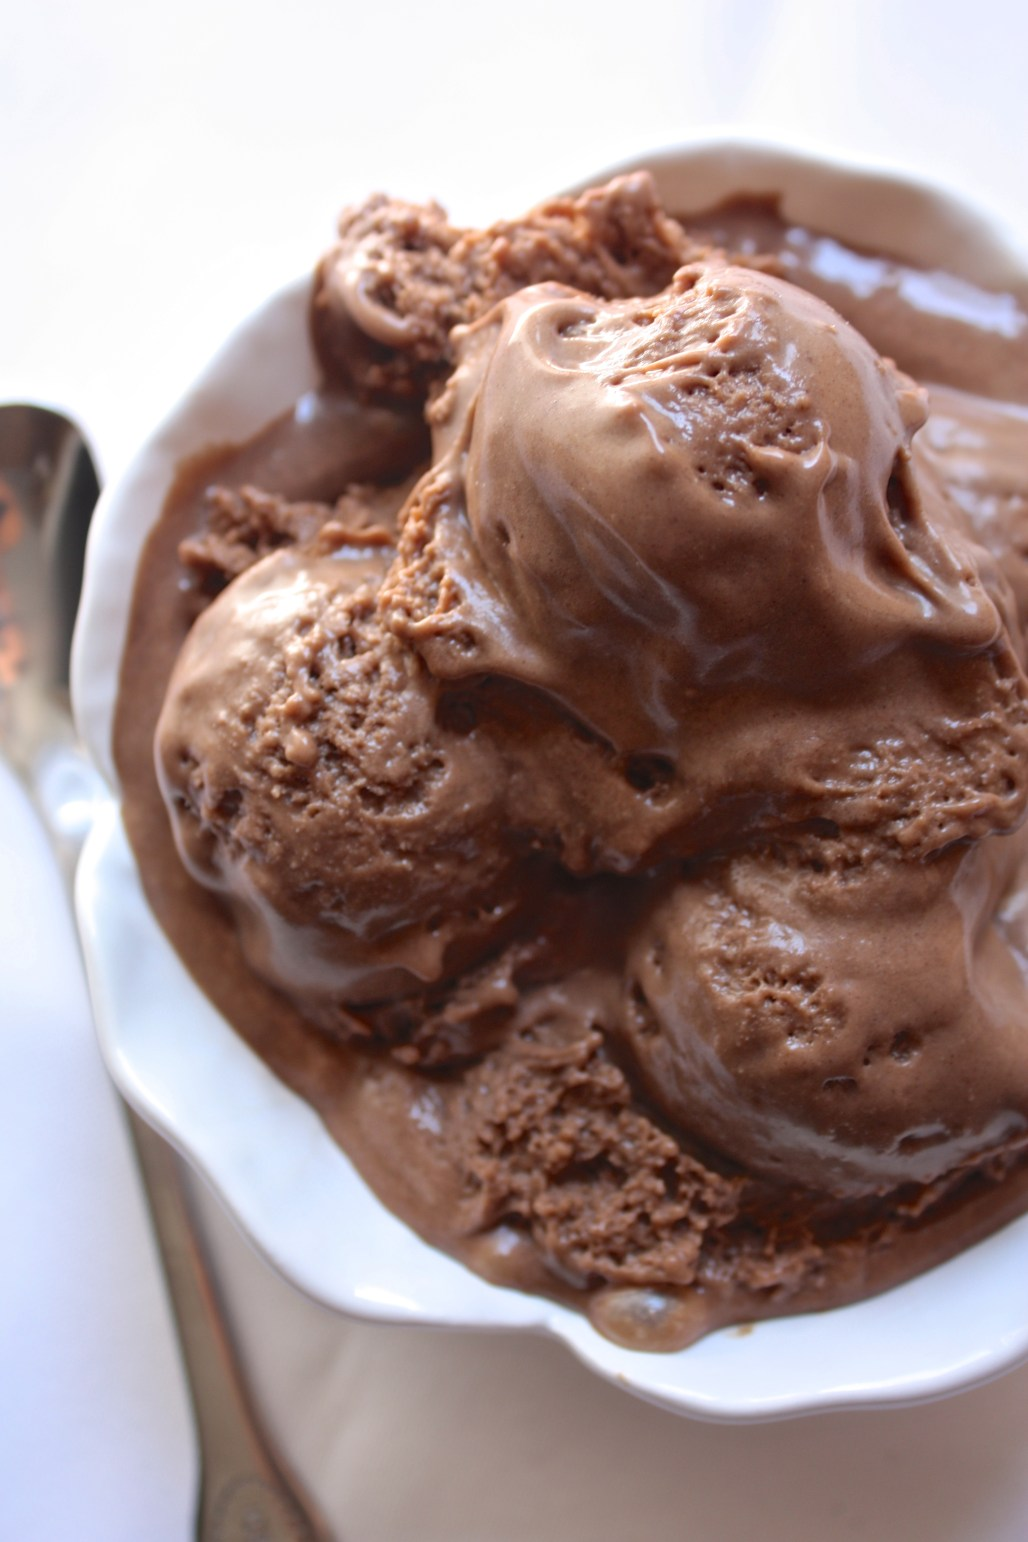 Frozen Chocolate Mousse